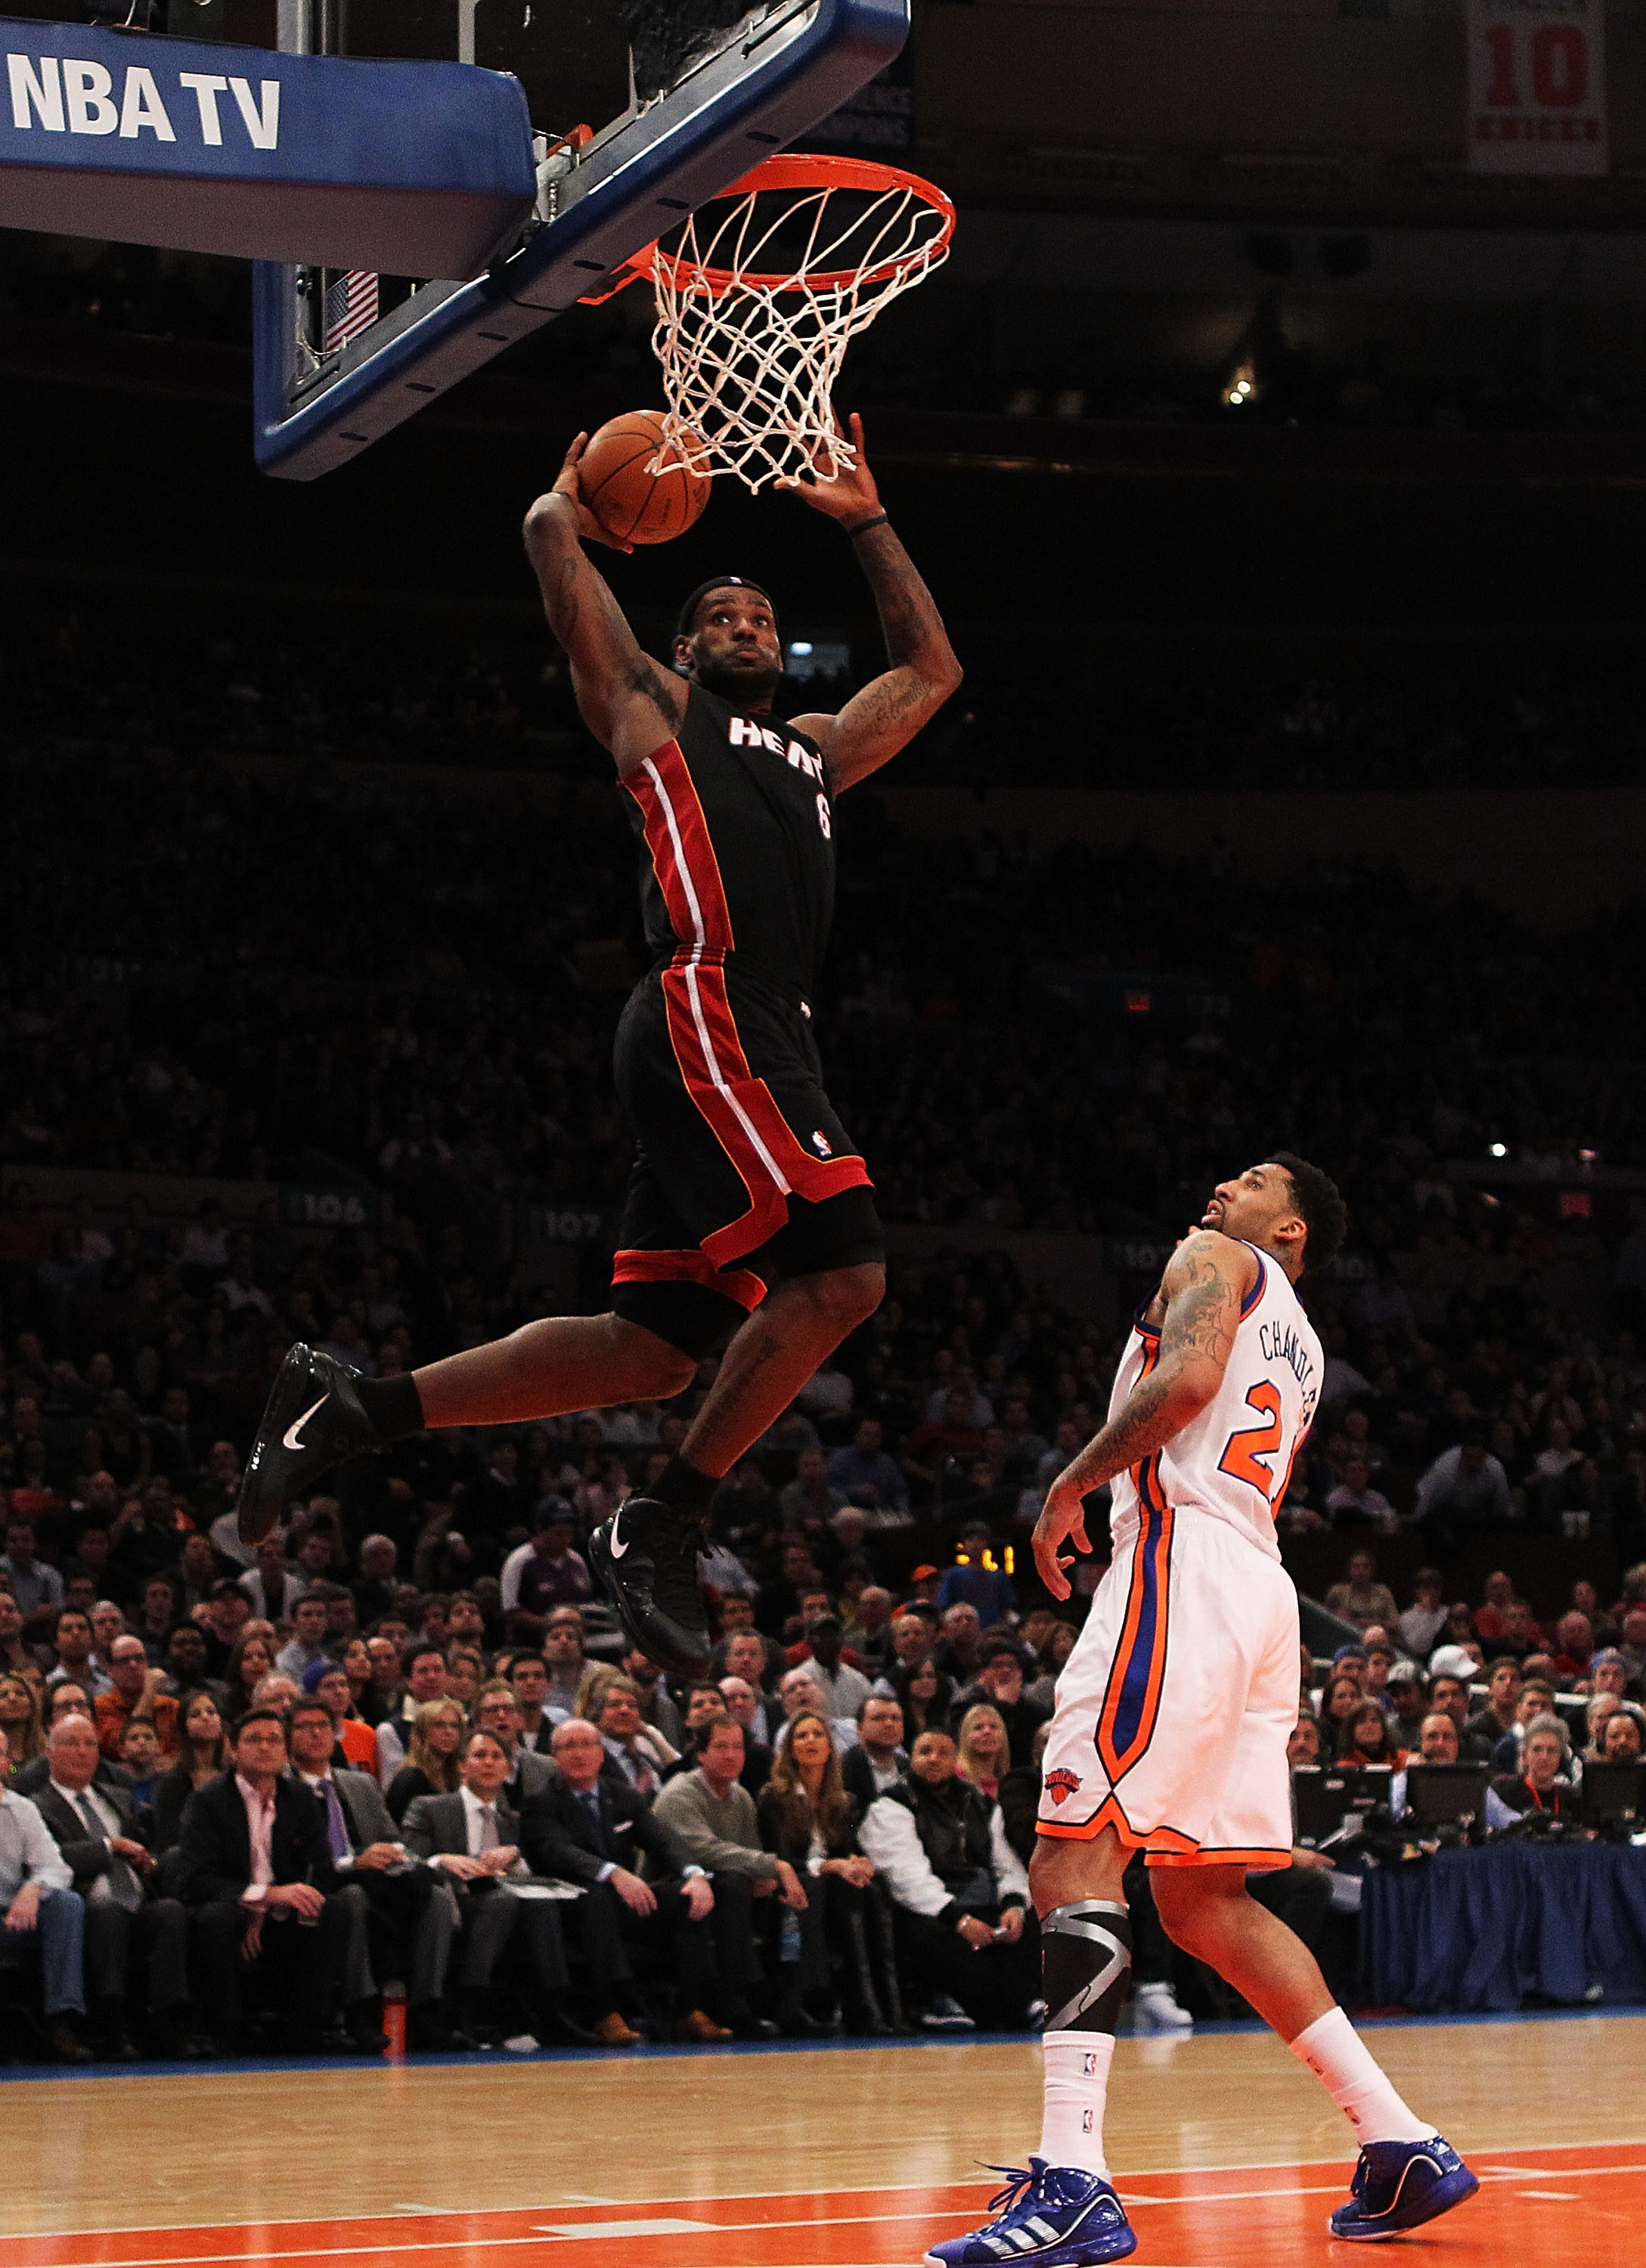 NEW YORK, NY - DECEMBER 17: LeBron James #6 of the Miami Heat dunks against Wilson Chandler #21 of the New York Knicks at Madison Square Garden on December 17, 2010 in New York City. NOTE TO USER: User expressly acknowledges and agrees that, by downloadin